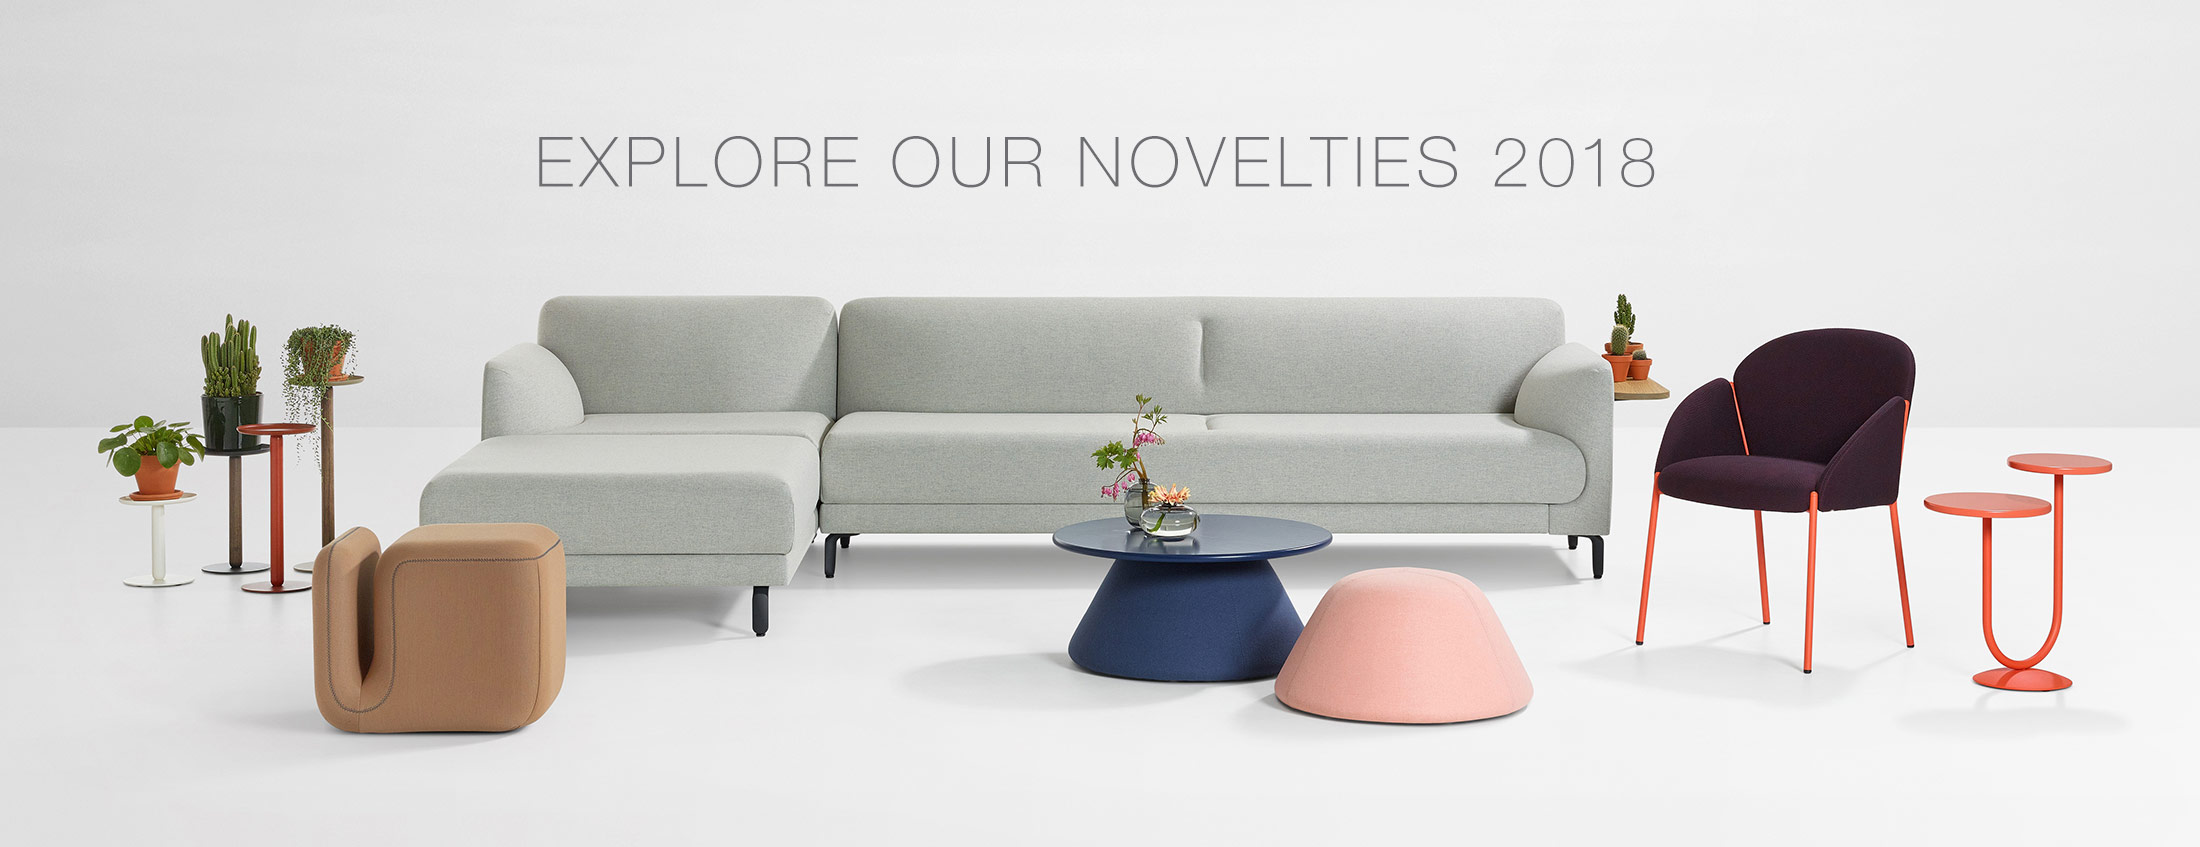 Explore the Artifort novelties of 2018